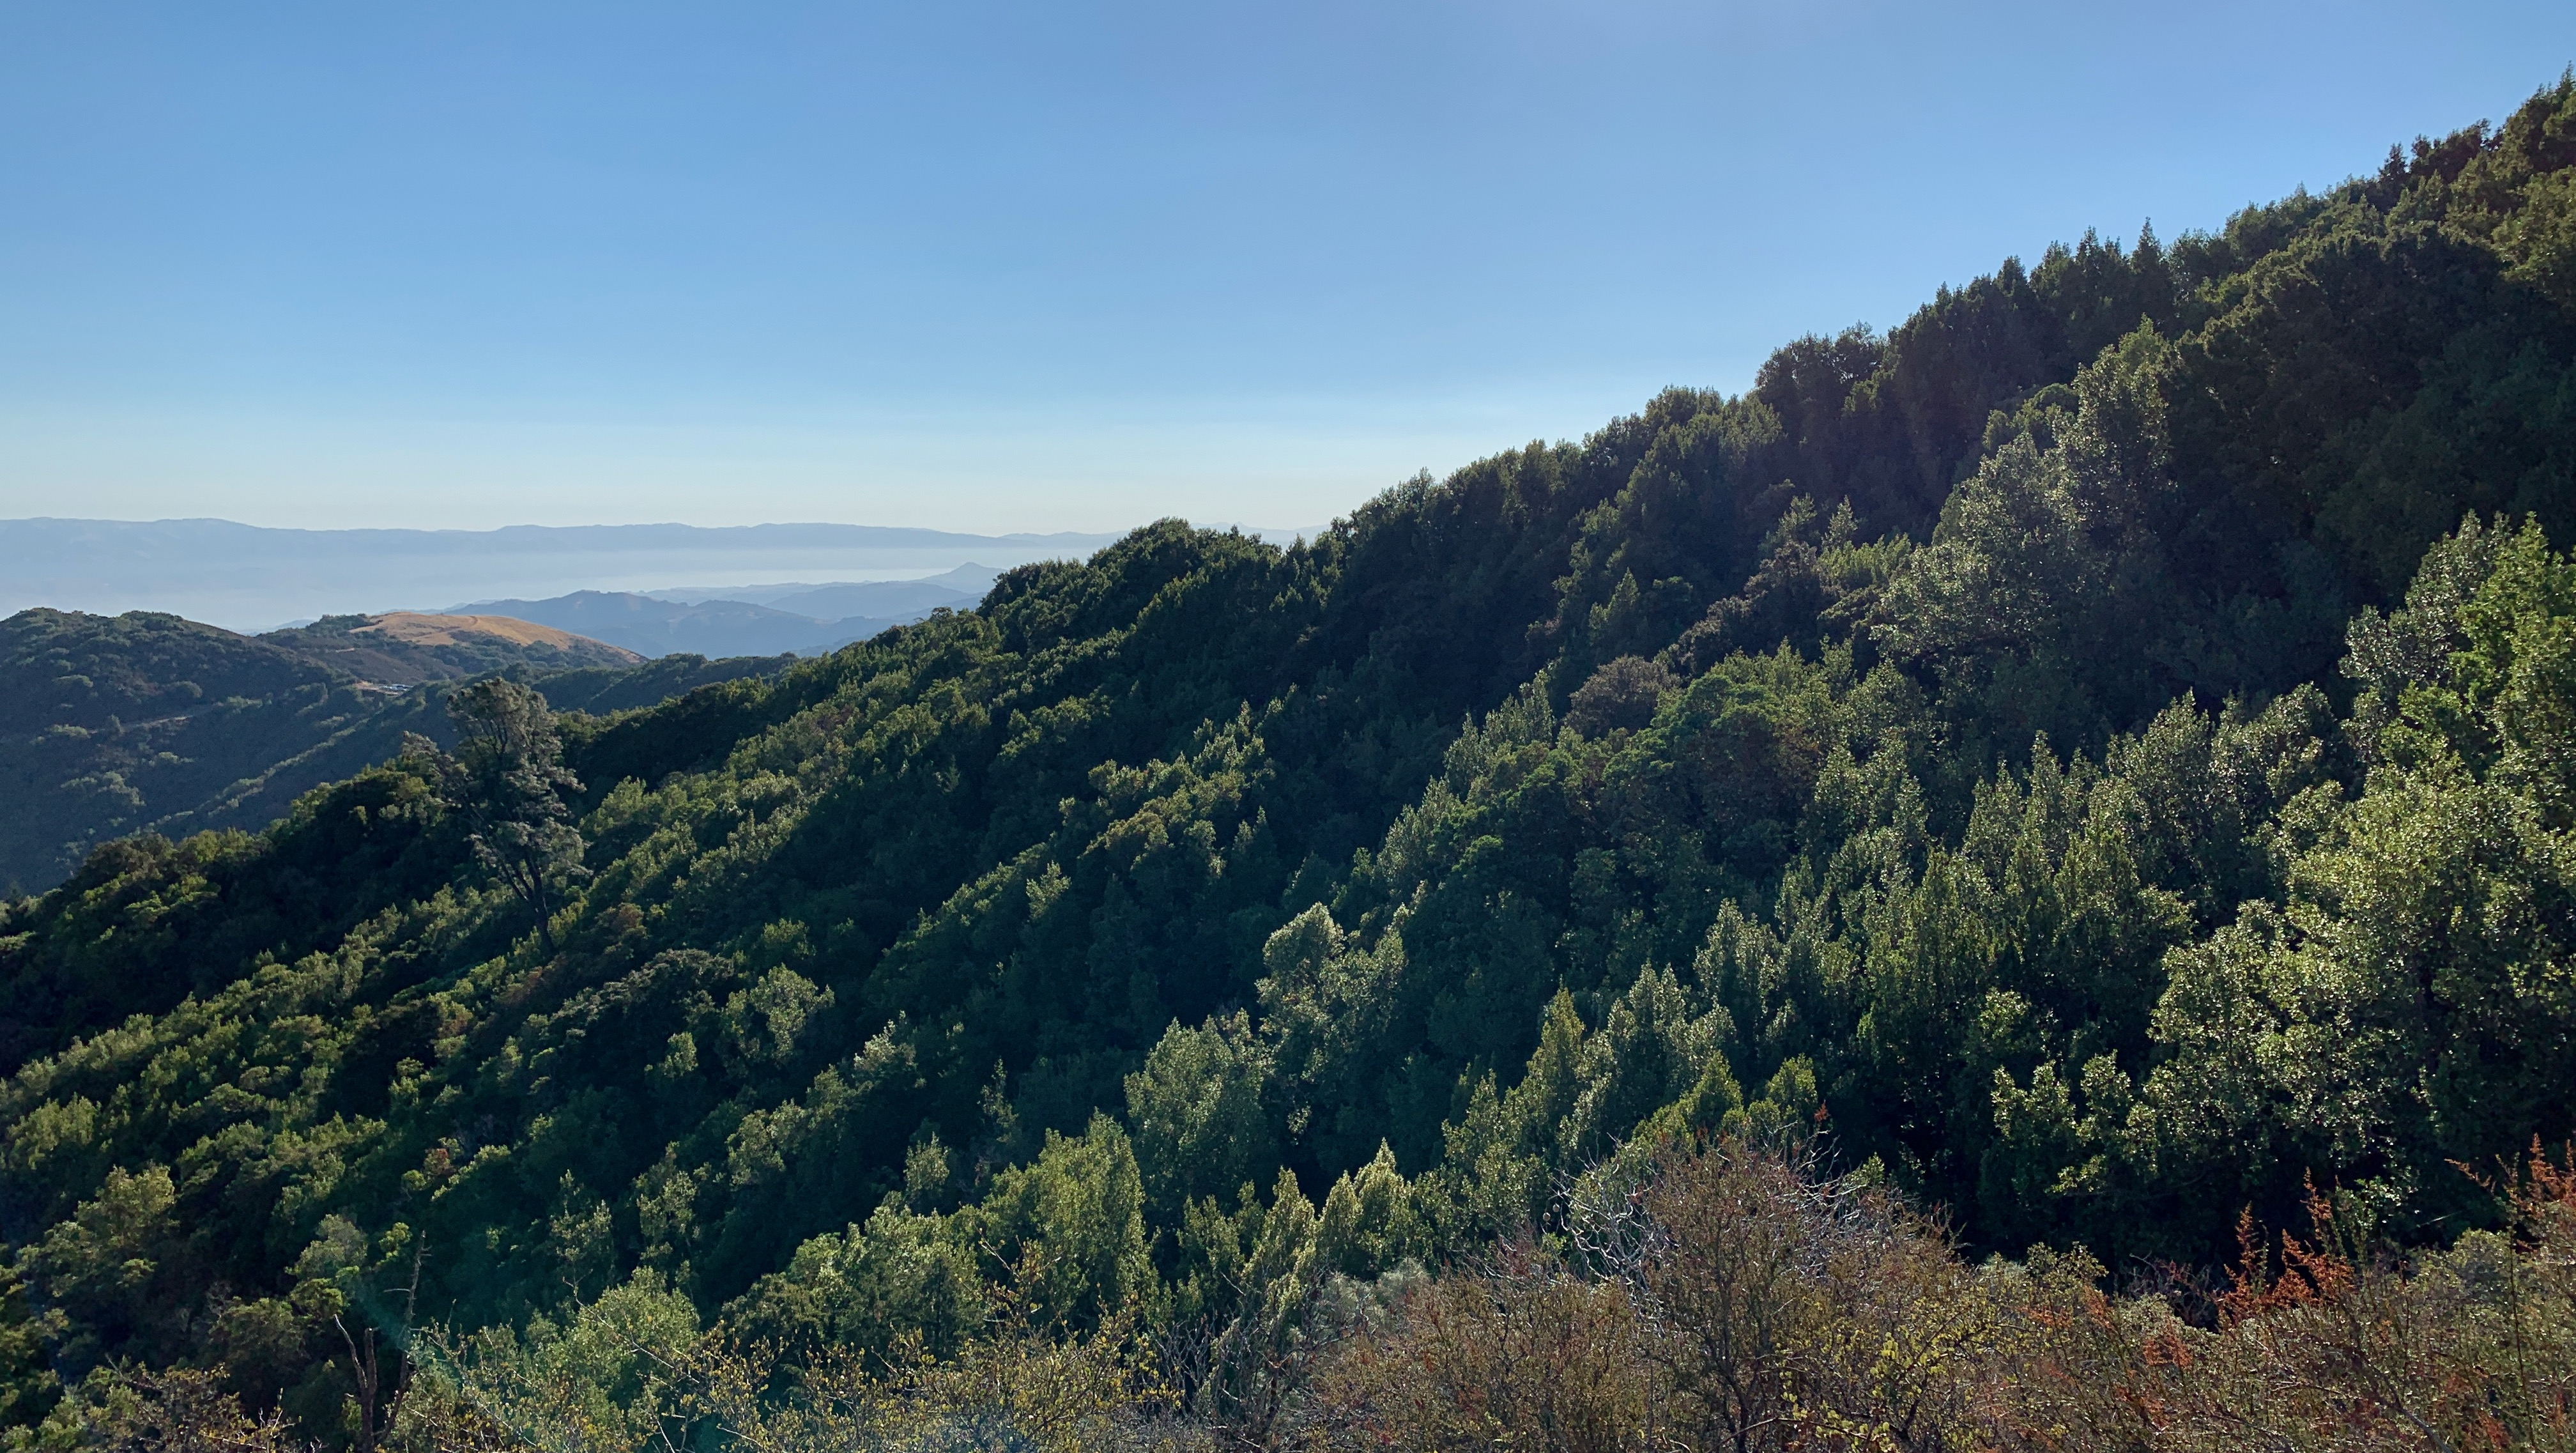 View from the Guadalupe Creek overlook.